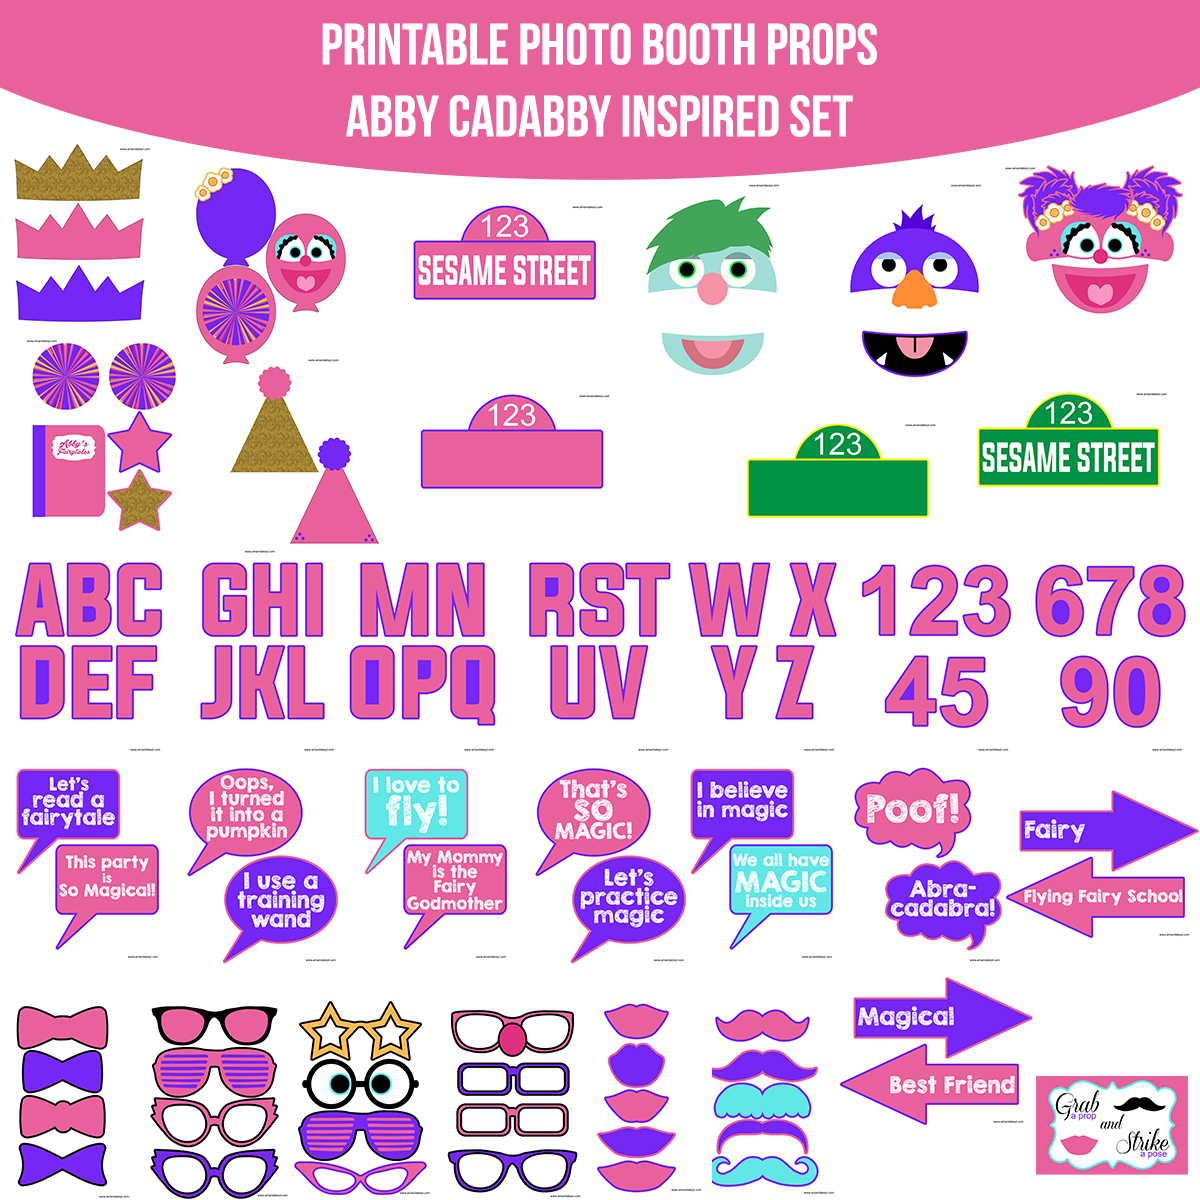 Instant Download Abby Cadabby Inspired Printable Photo Booth Prop Set Amanda Keyt Printable Designs